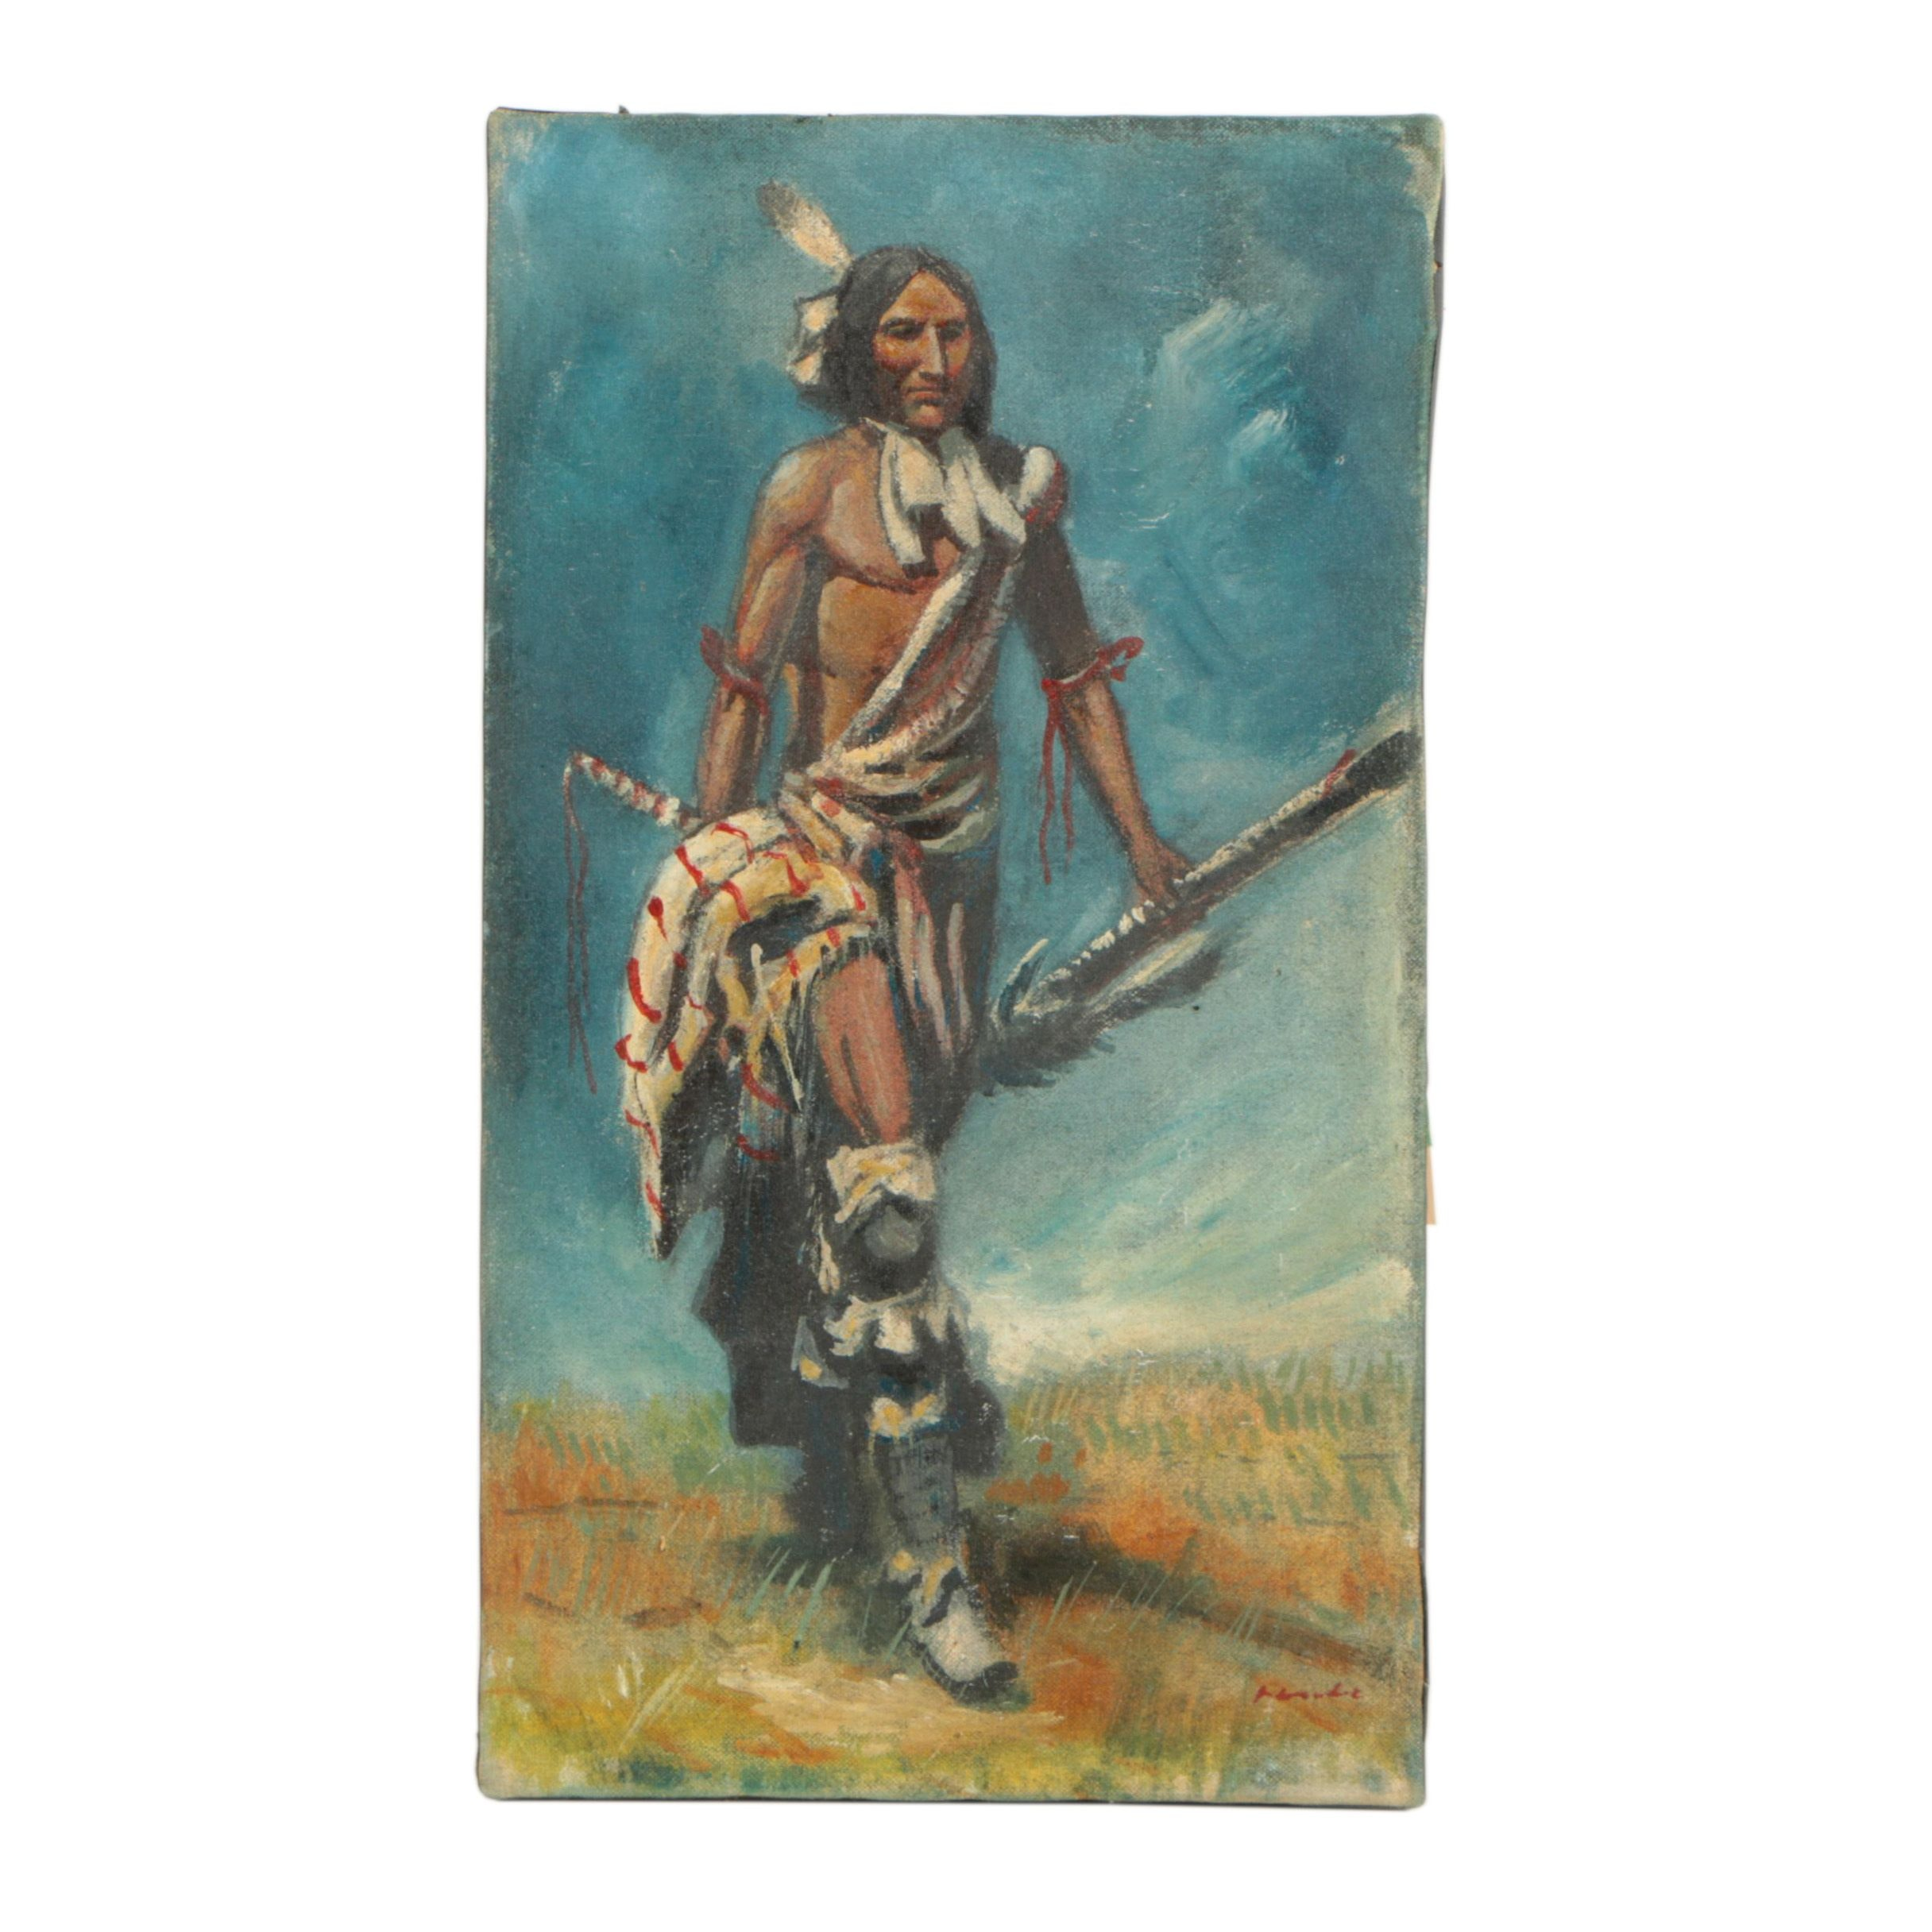 Oil Painting of a Figure in Native American Attire